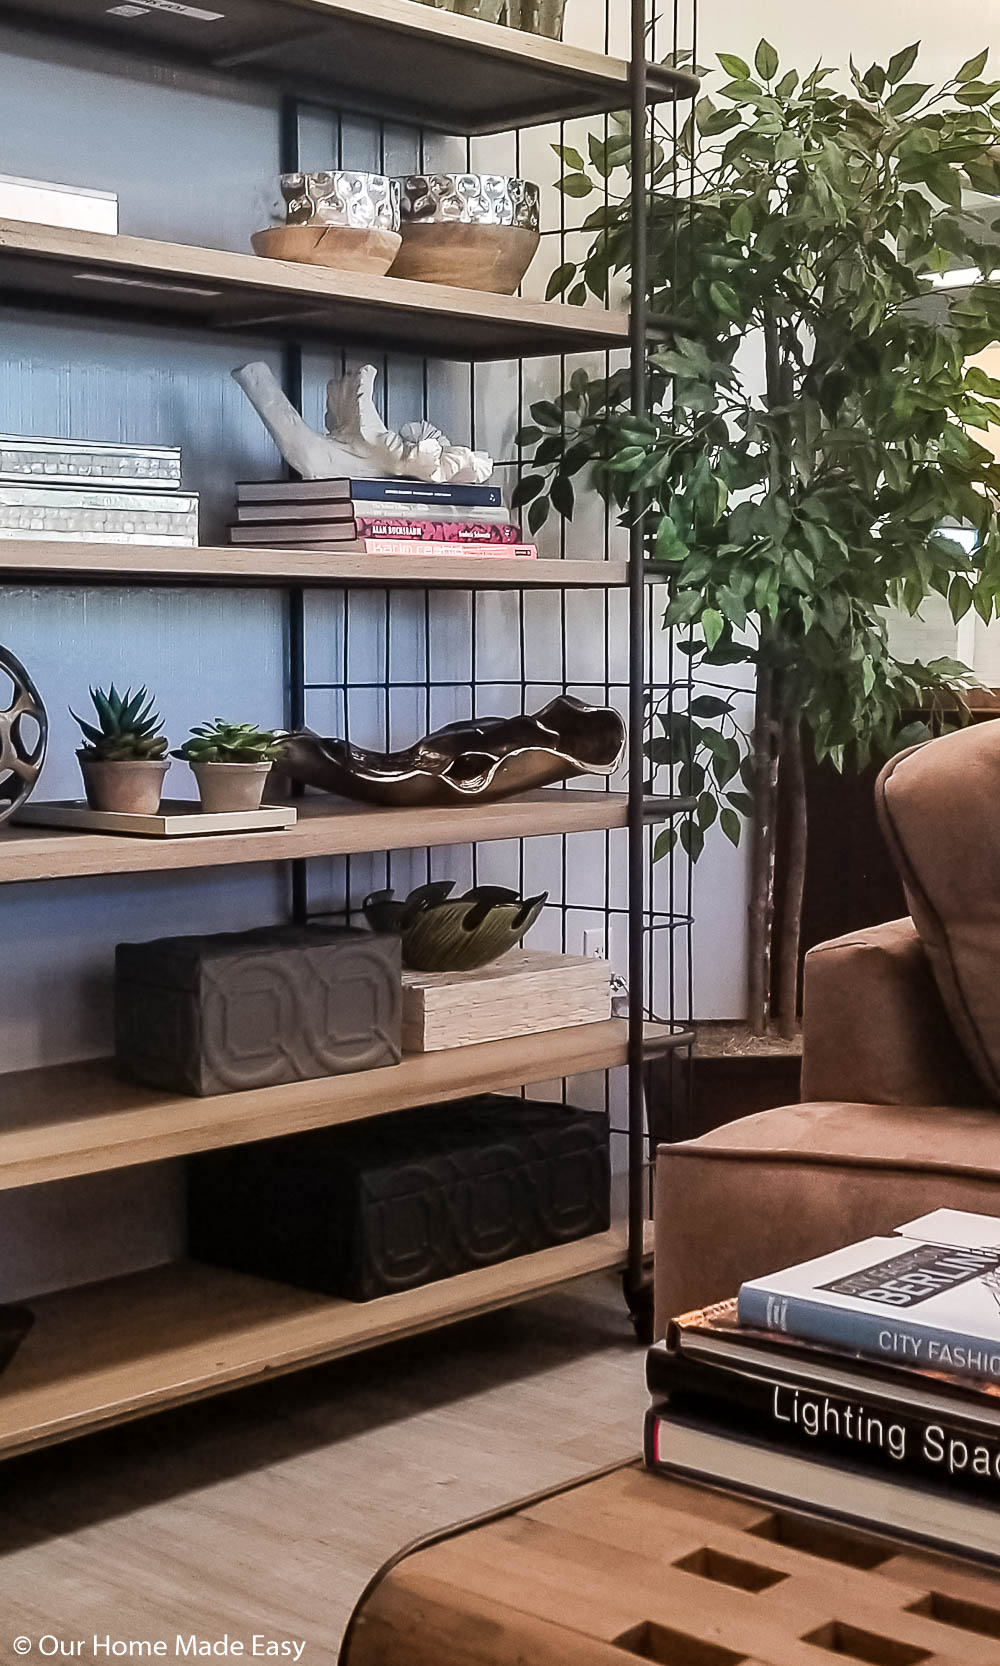 A bookshelf with some sentimental items can make a temporary house feel more like home